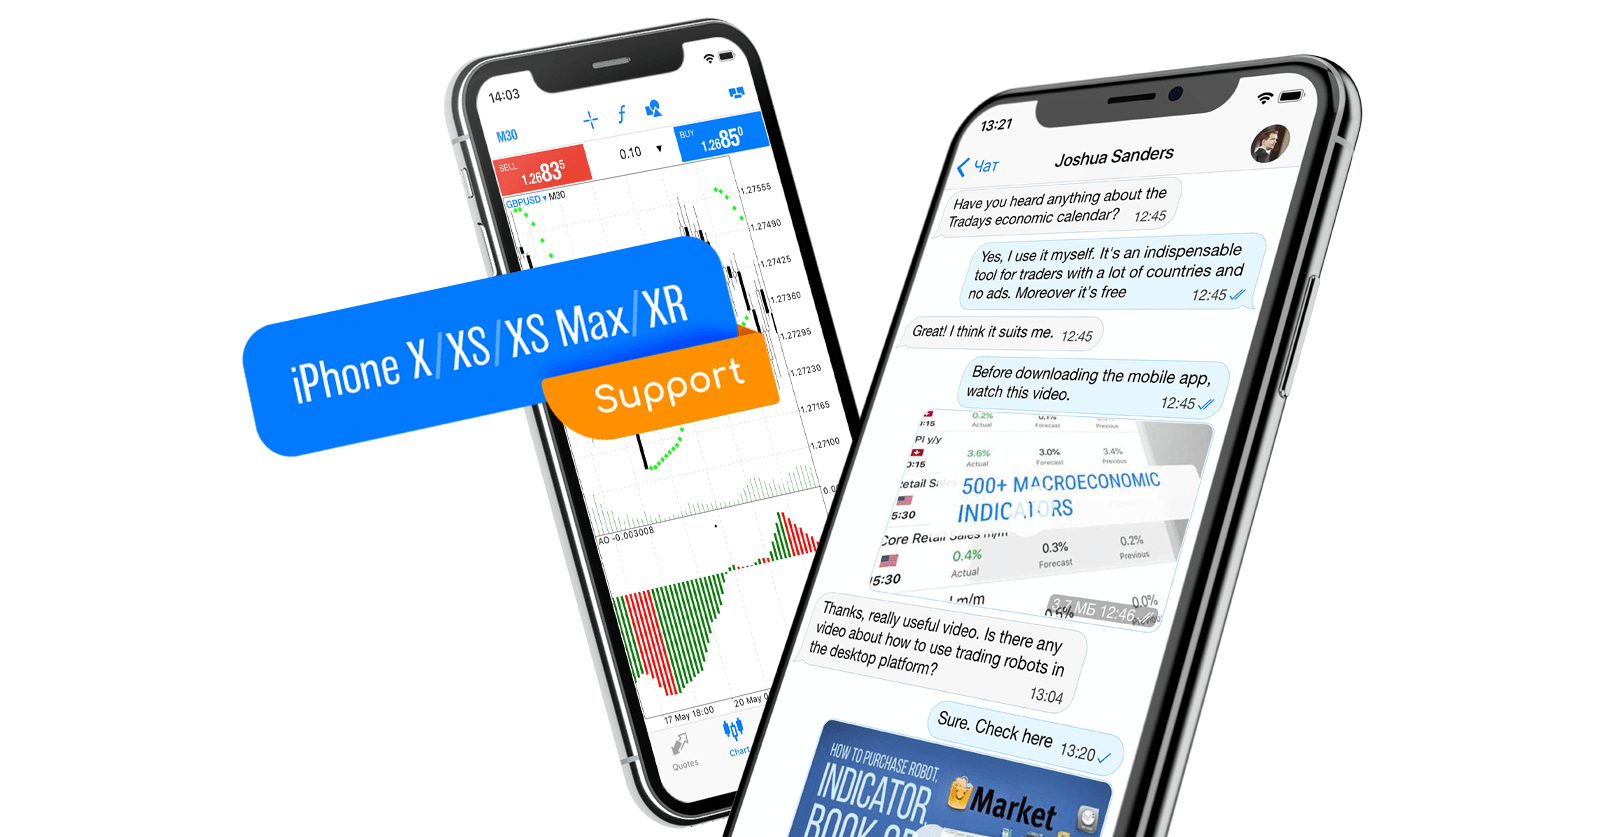 Soporte nativo de iPhone X/XS/XS Max/XR en MetaTrader 5 iOS